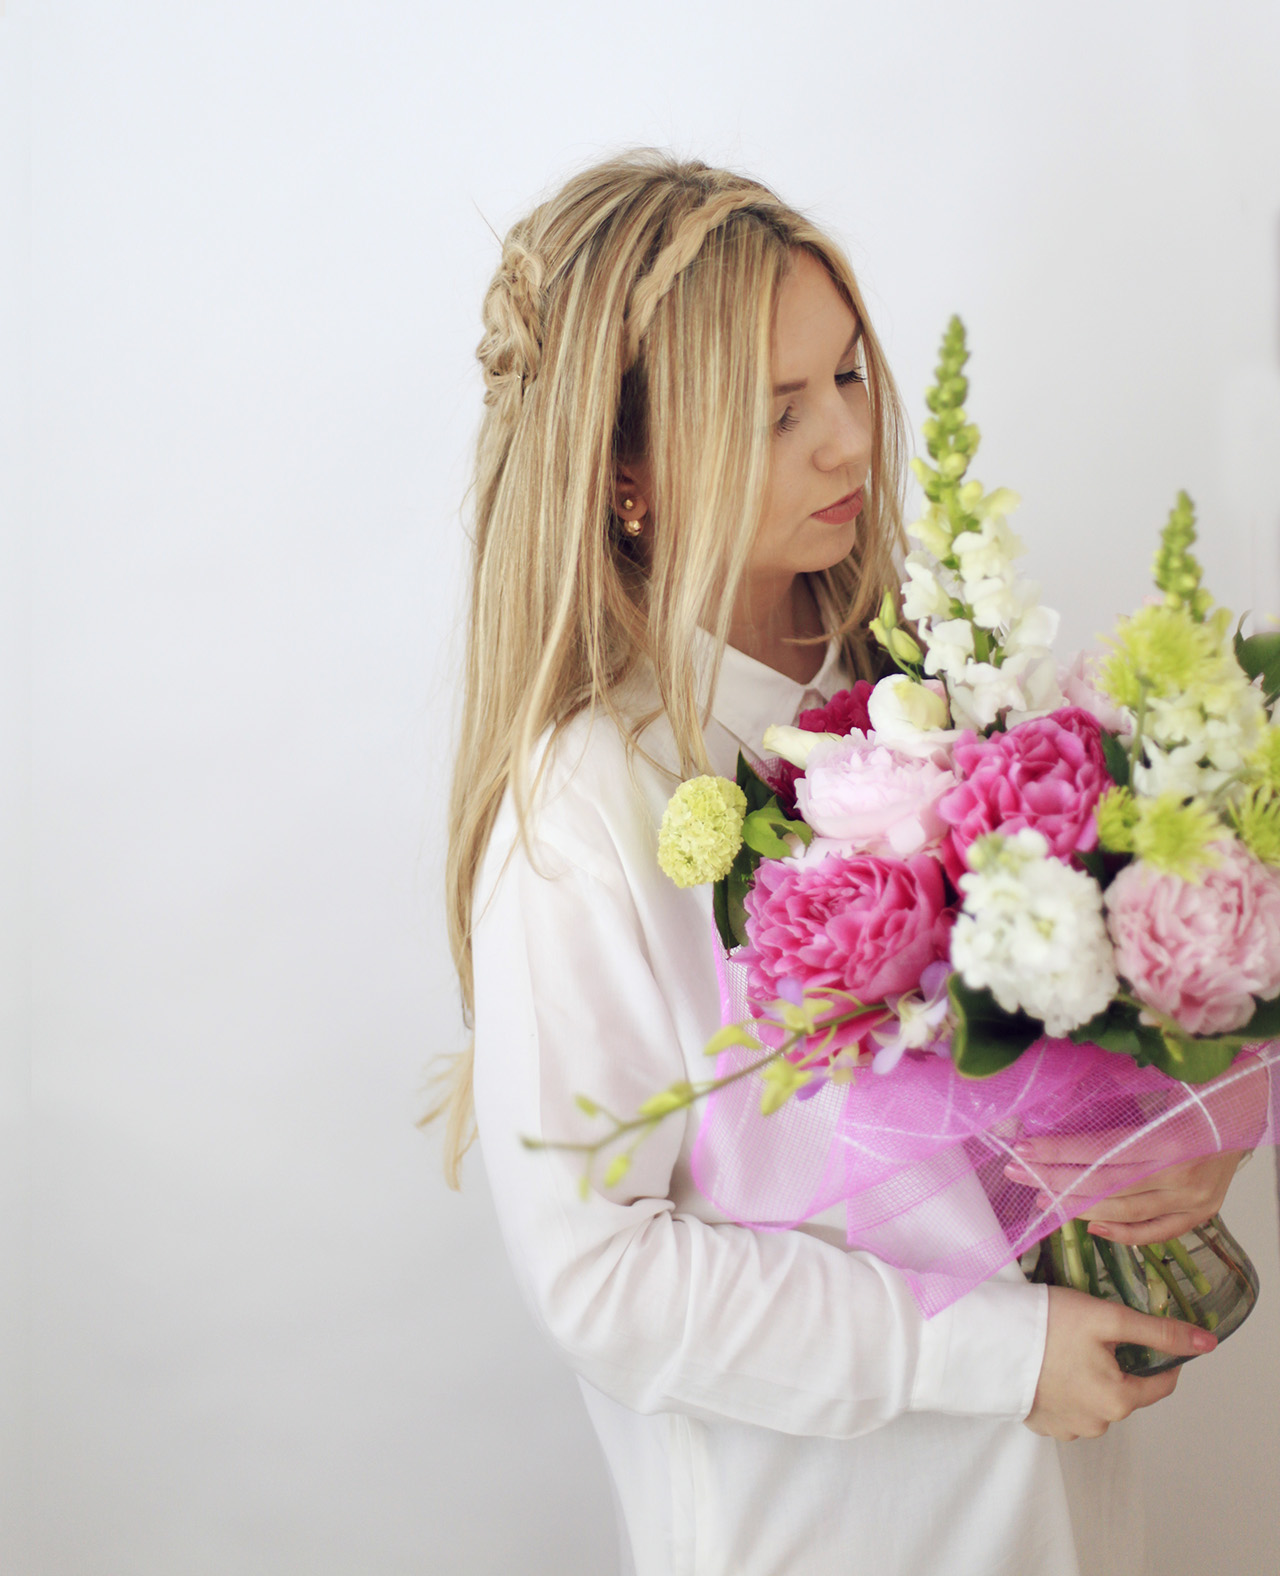 long-blonde-hair-flowers-tumblr-girl